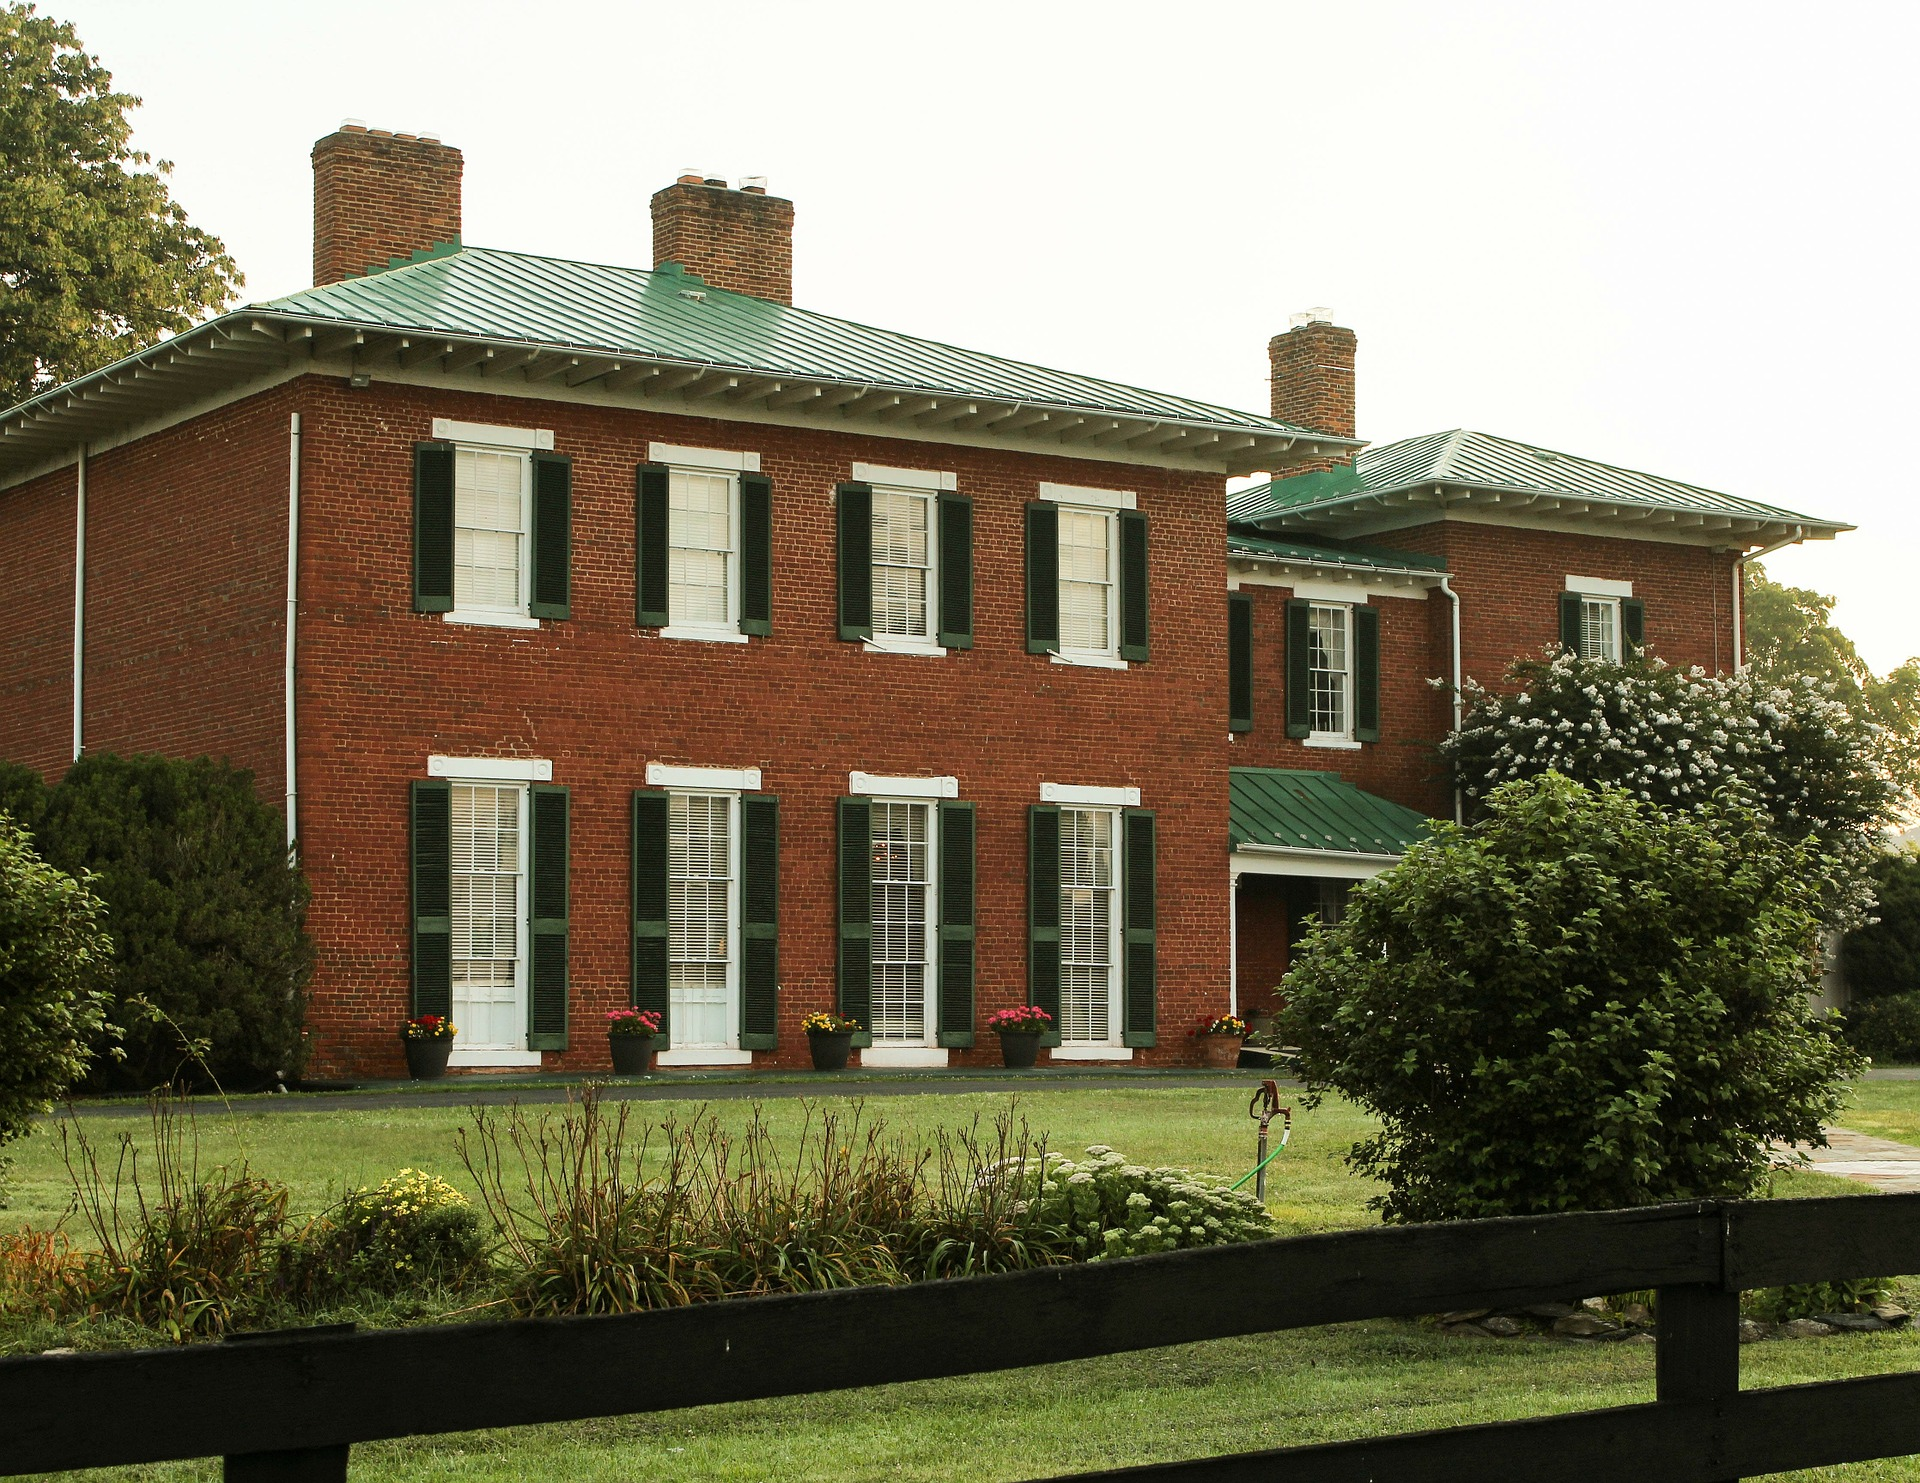 A typical large red brick house